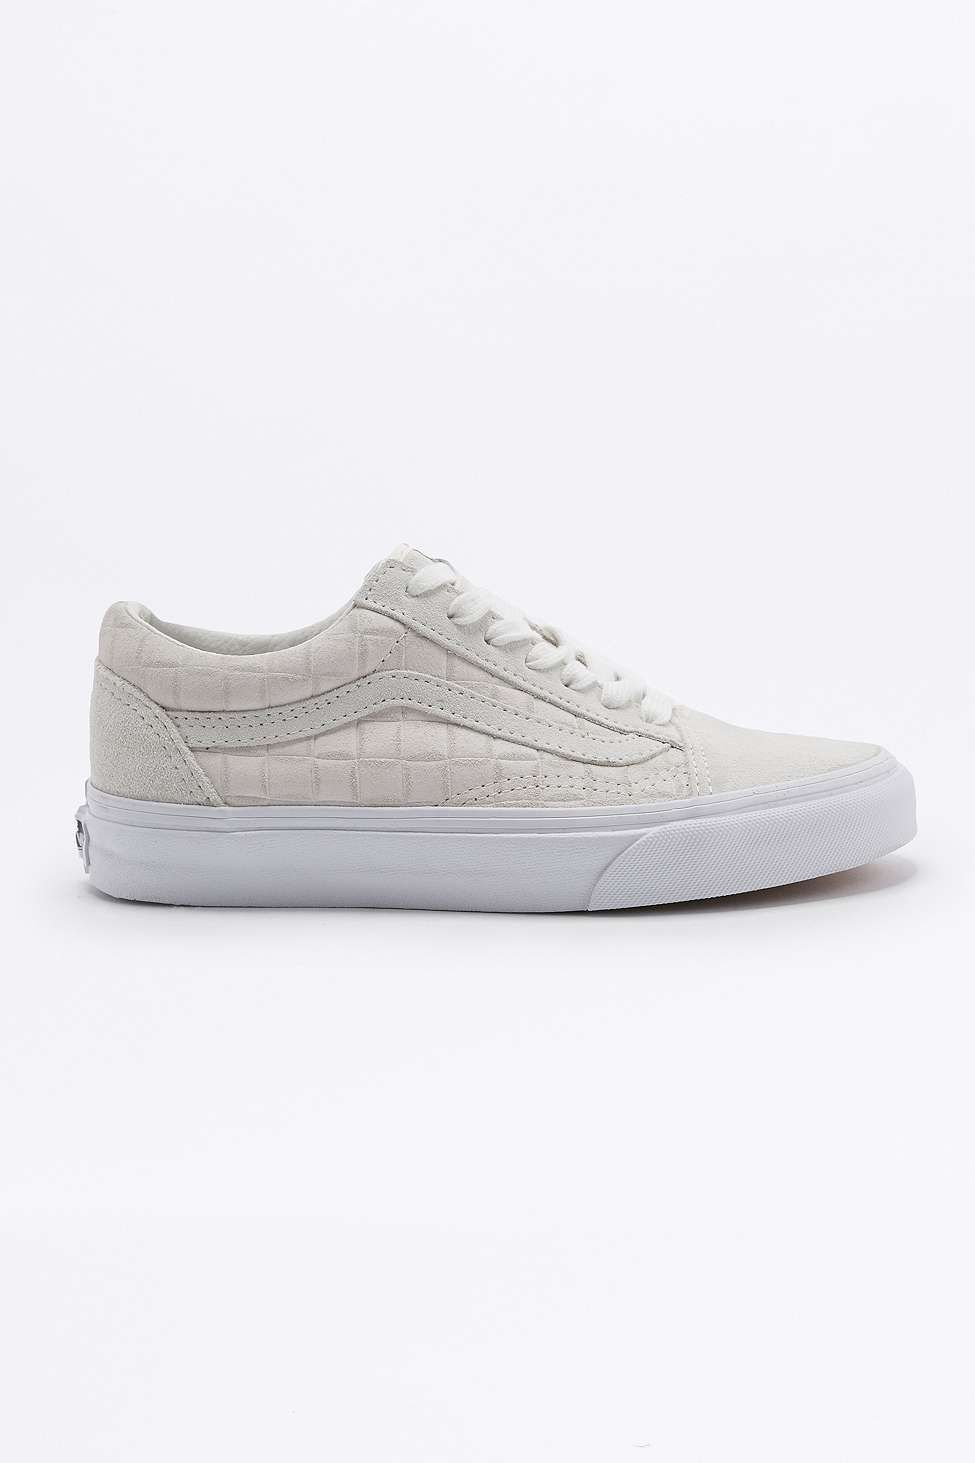 1b917e8906bd41 Vans Old Skool Off-White Checked Suede Trainers - Urban Outfitters